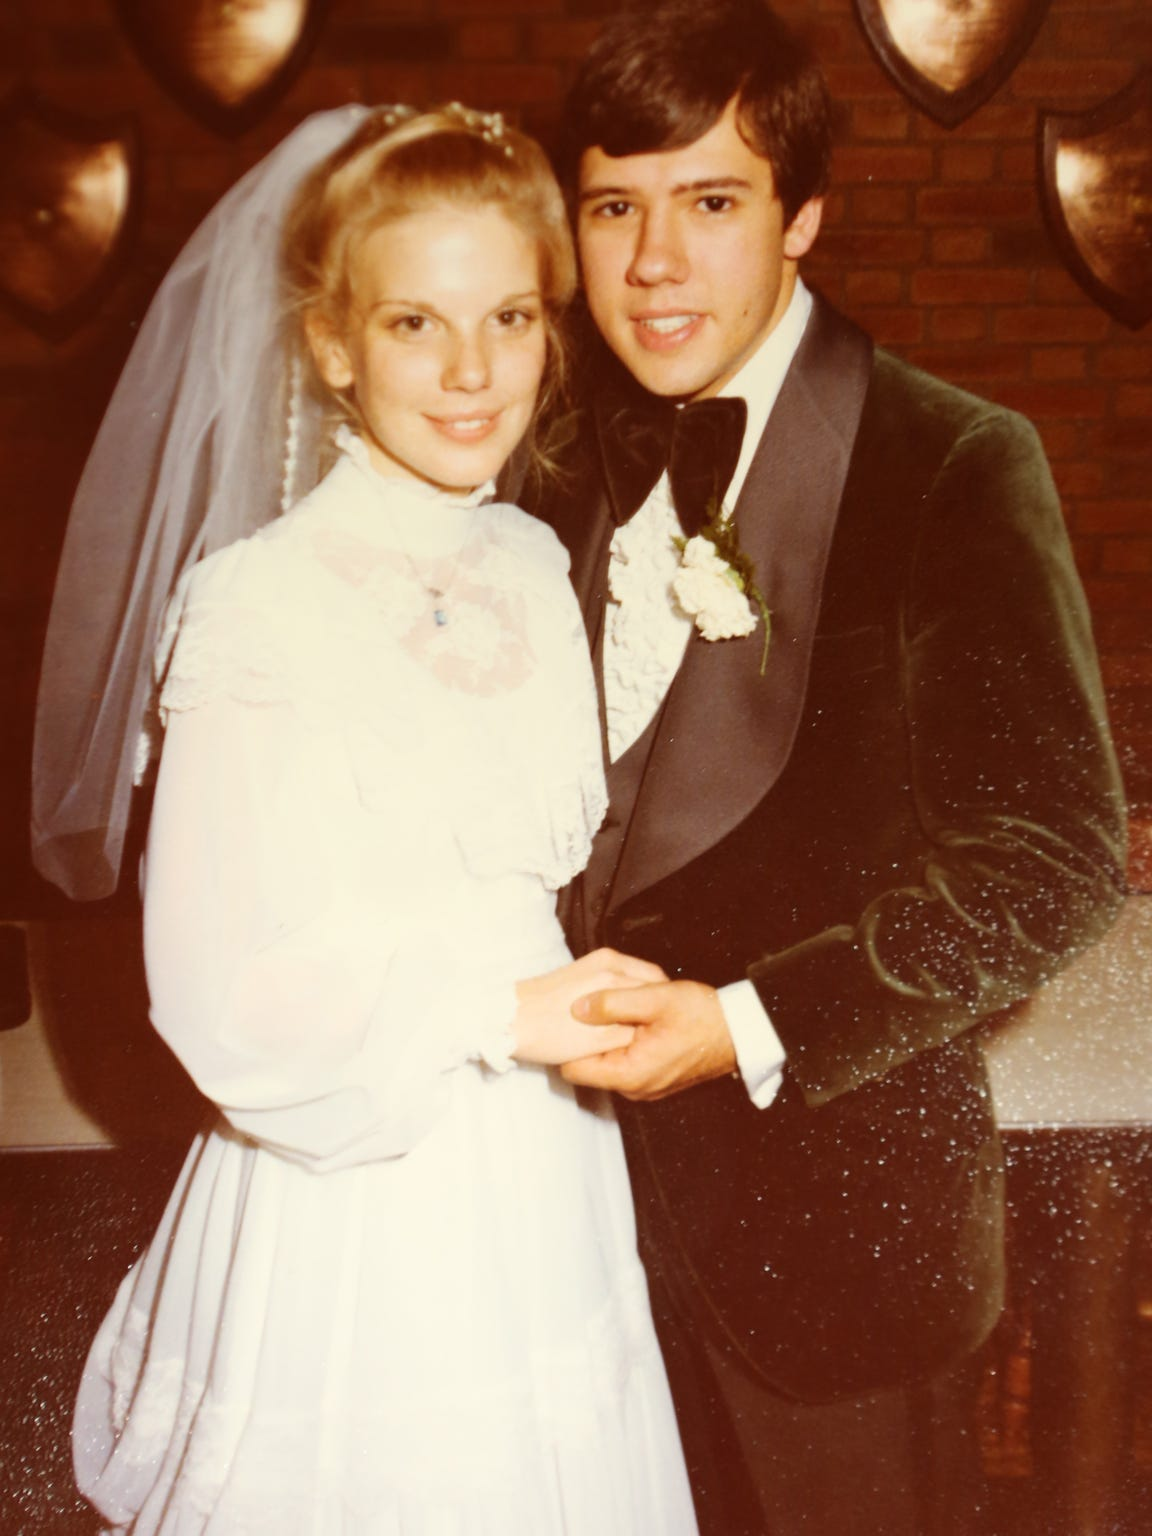 Lee and Judie Pagones married in 1978. They have four